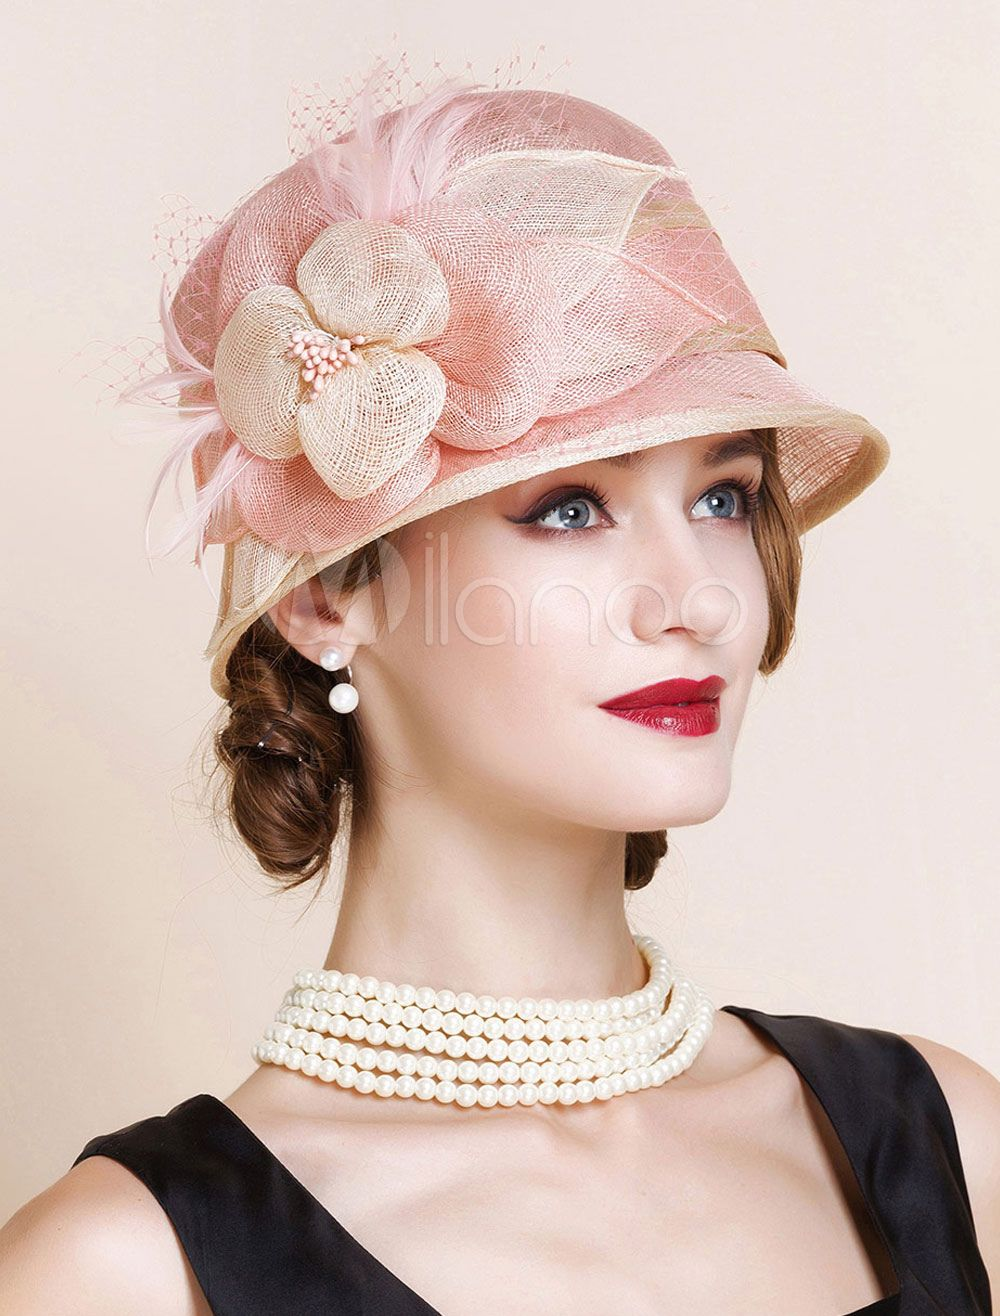 a5293de511 Vintage Hat Women Pink Linen Royal Flowers Cloche Hat Retro Costume  Accessories  Pink